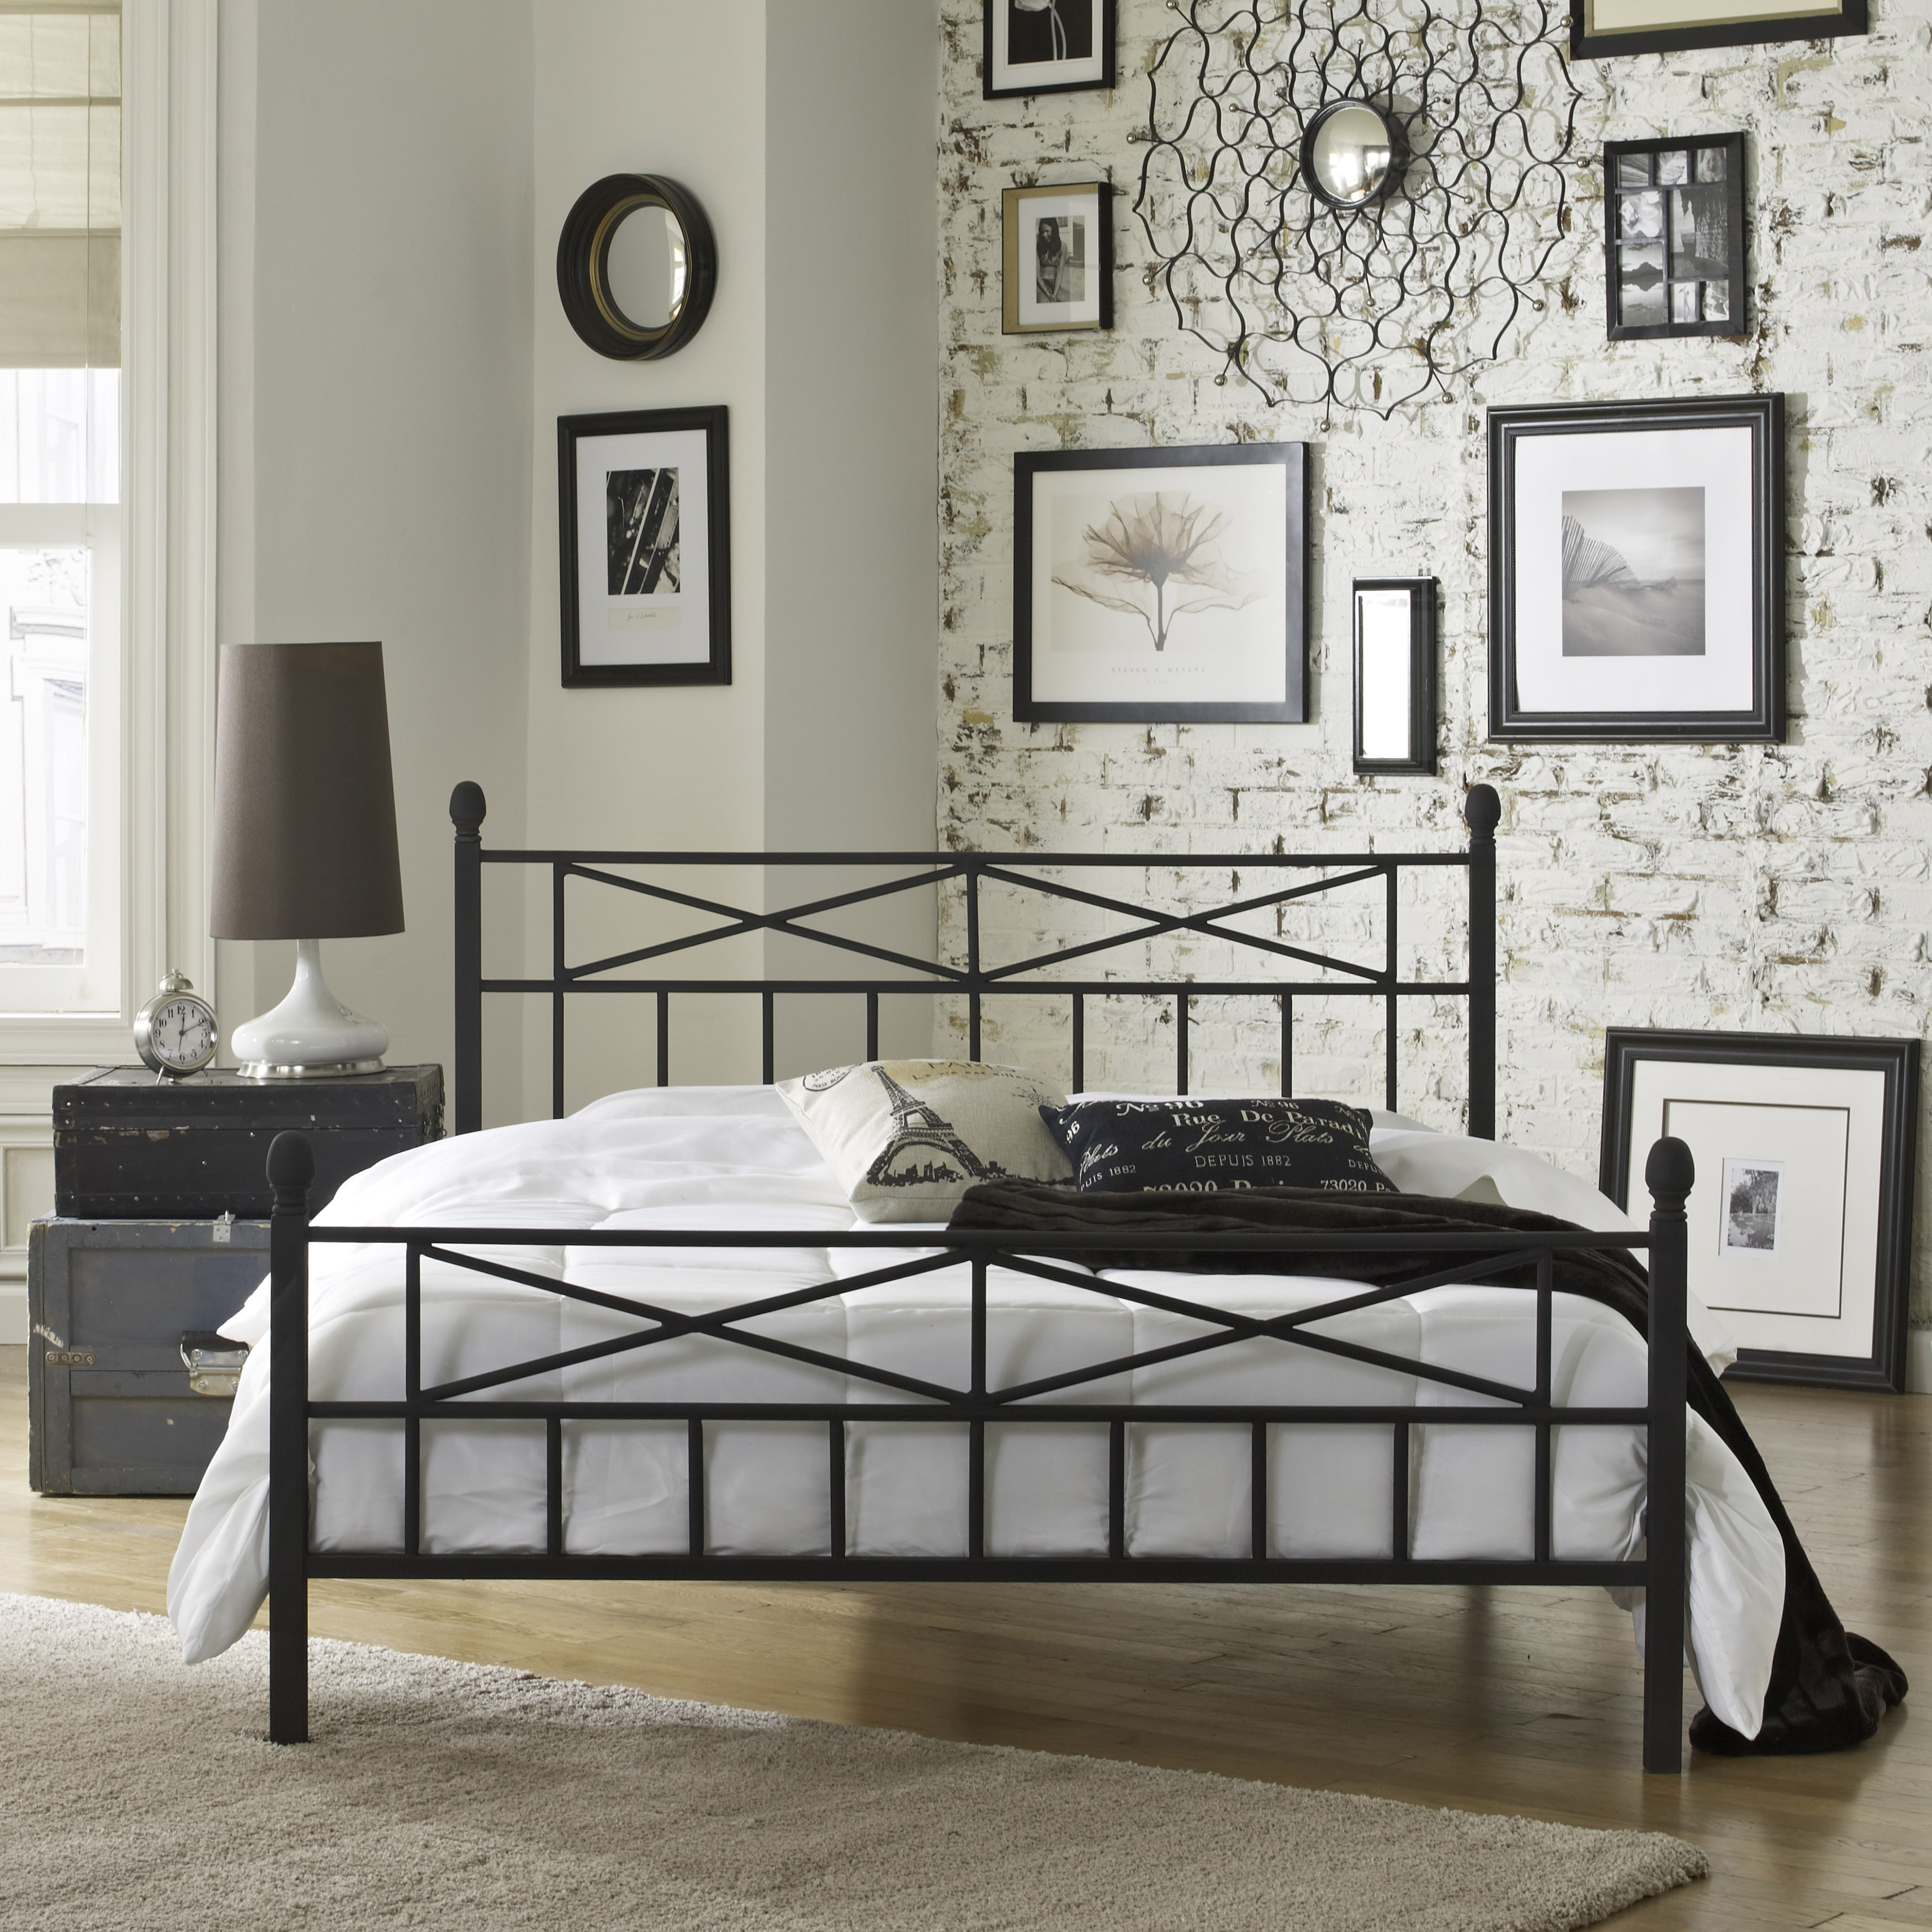 Boyd Specialty Sleep Sleep Sync Aston Platform Bed